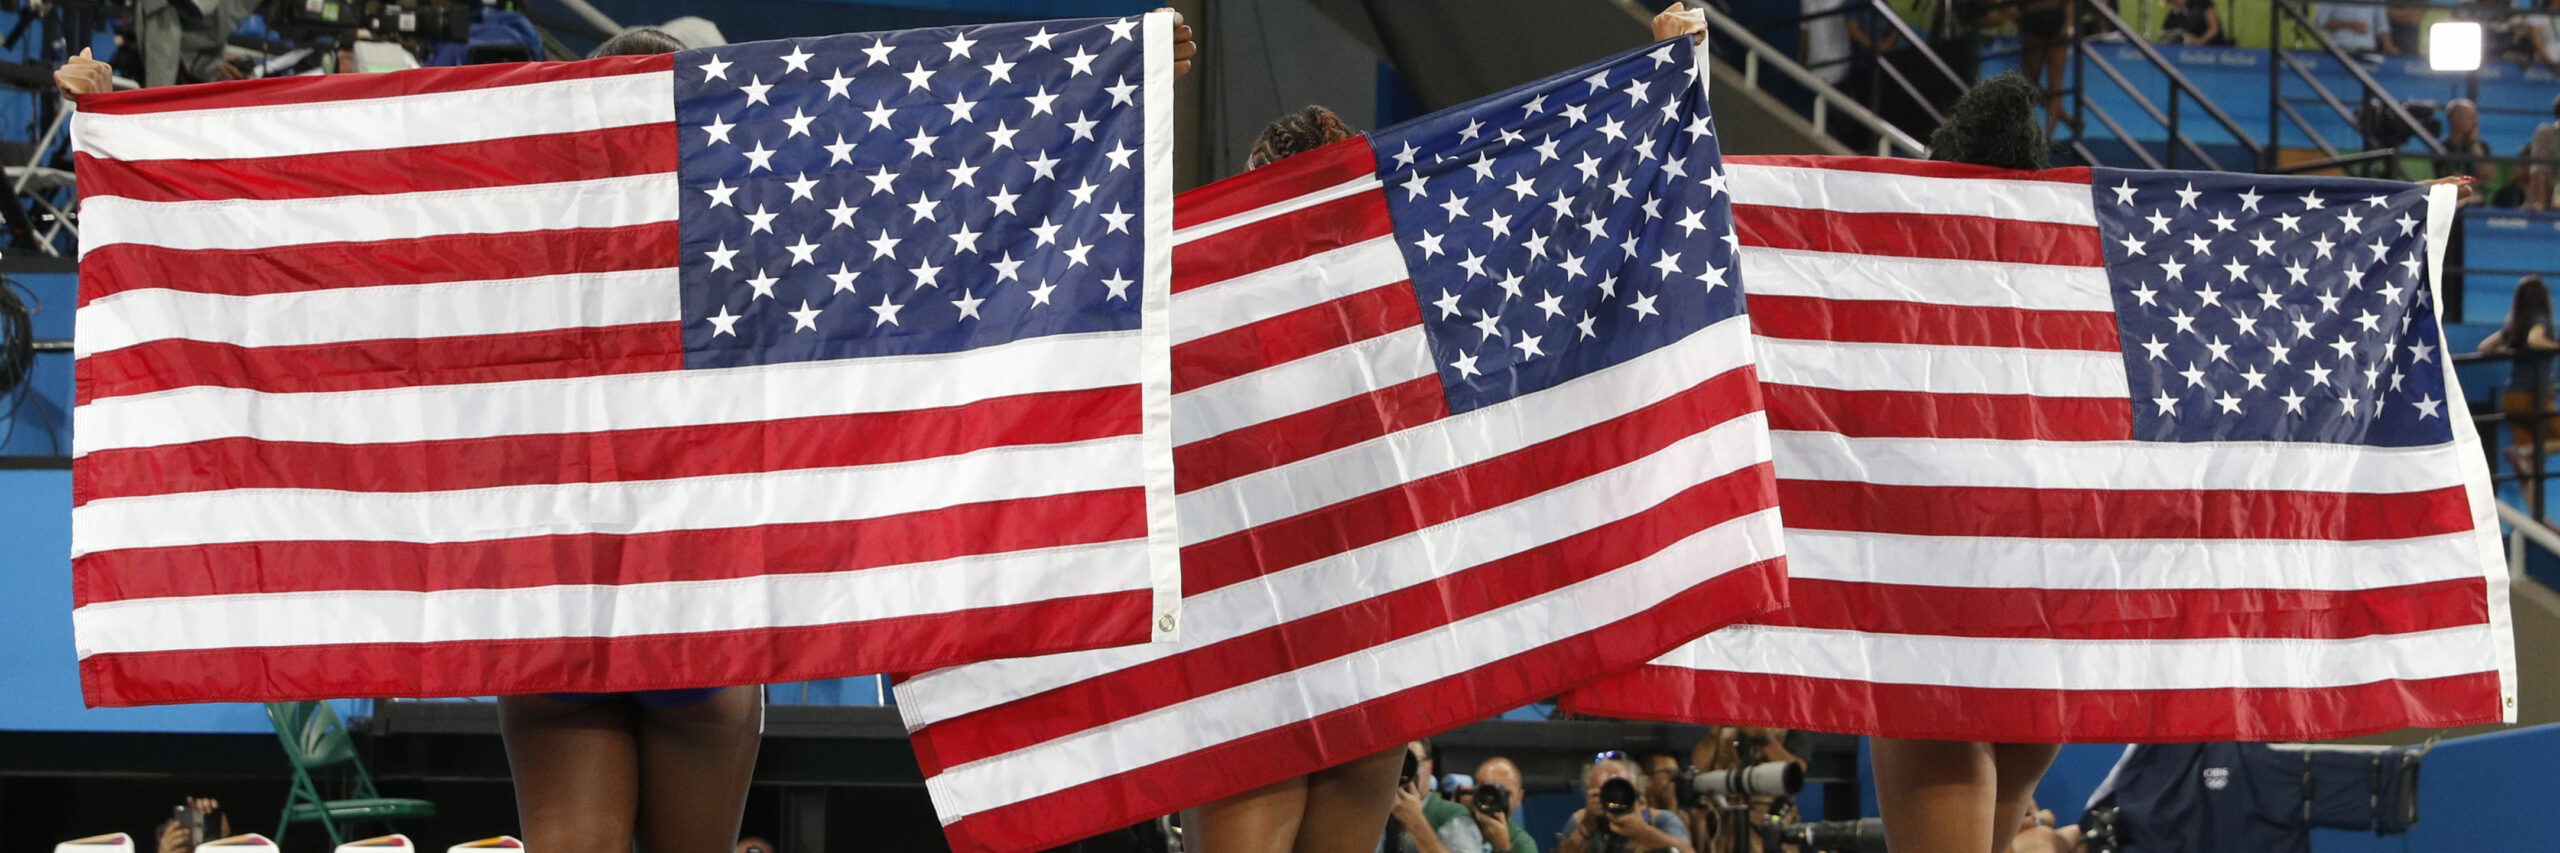 Olympics betting odds: Americans expected to dominate